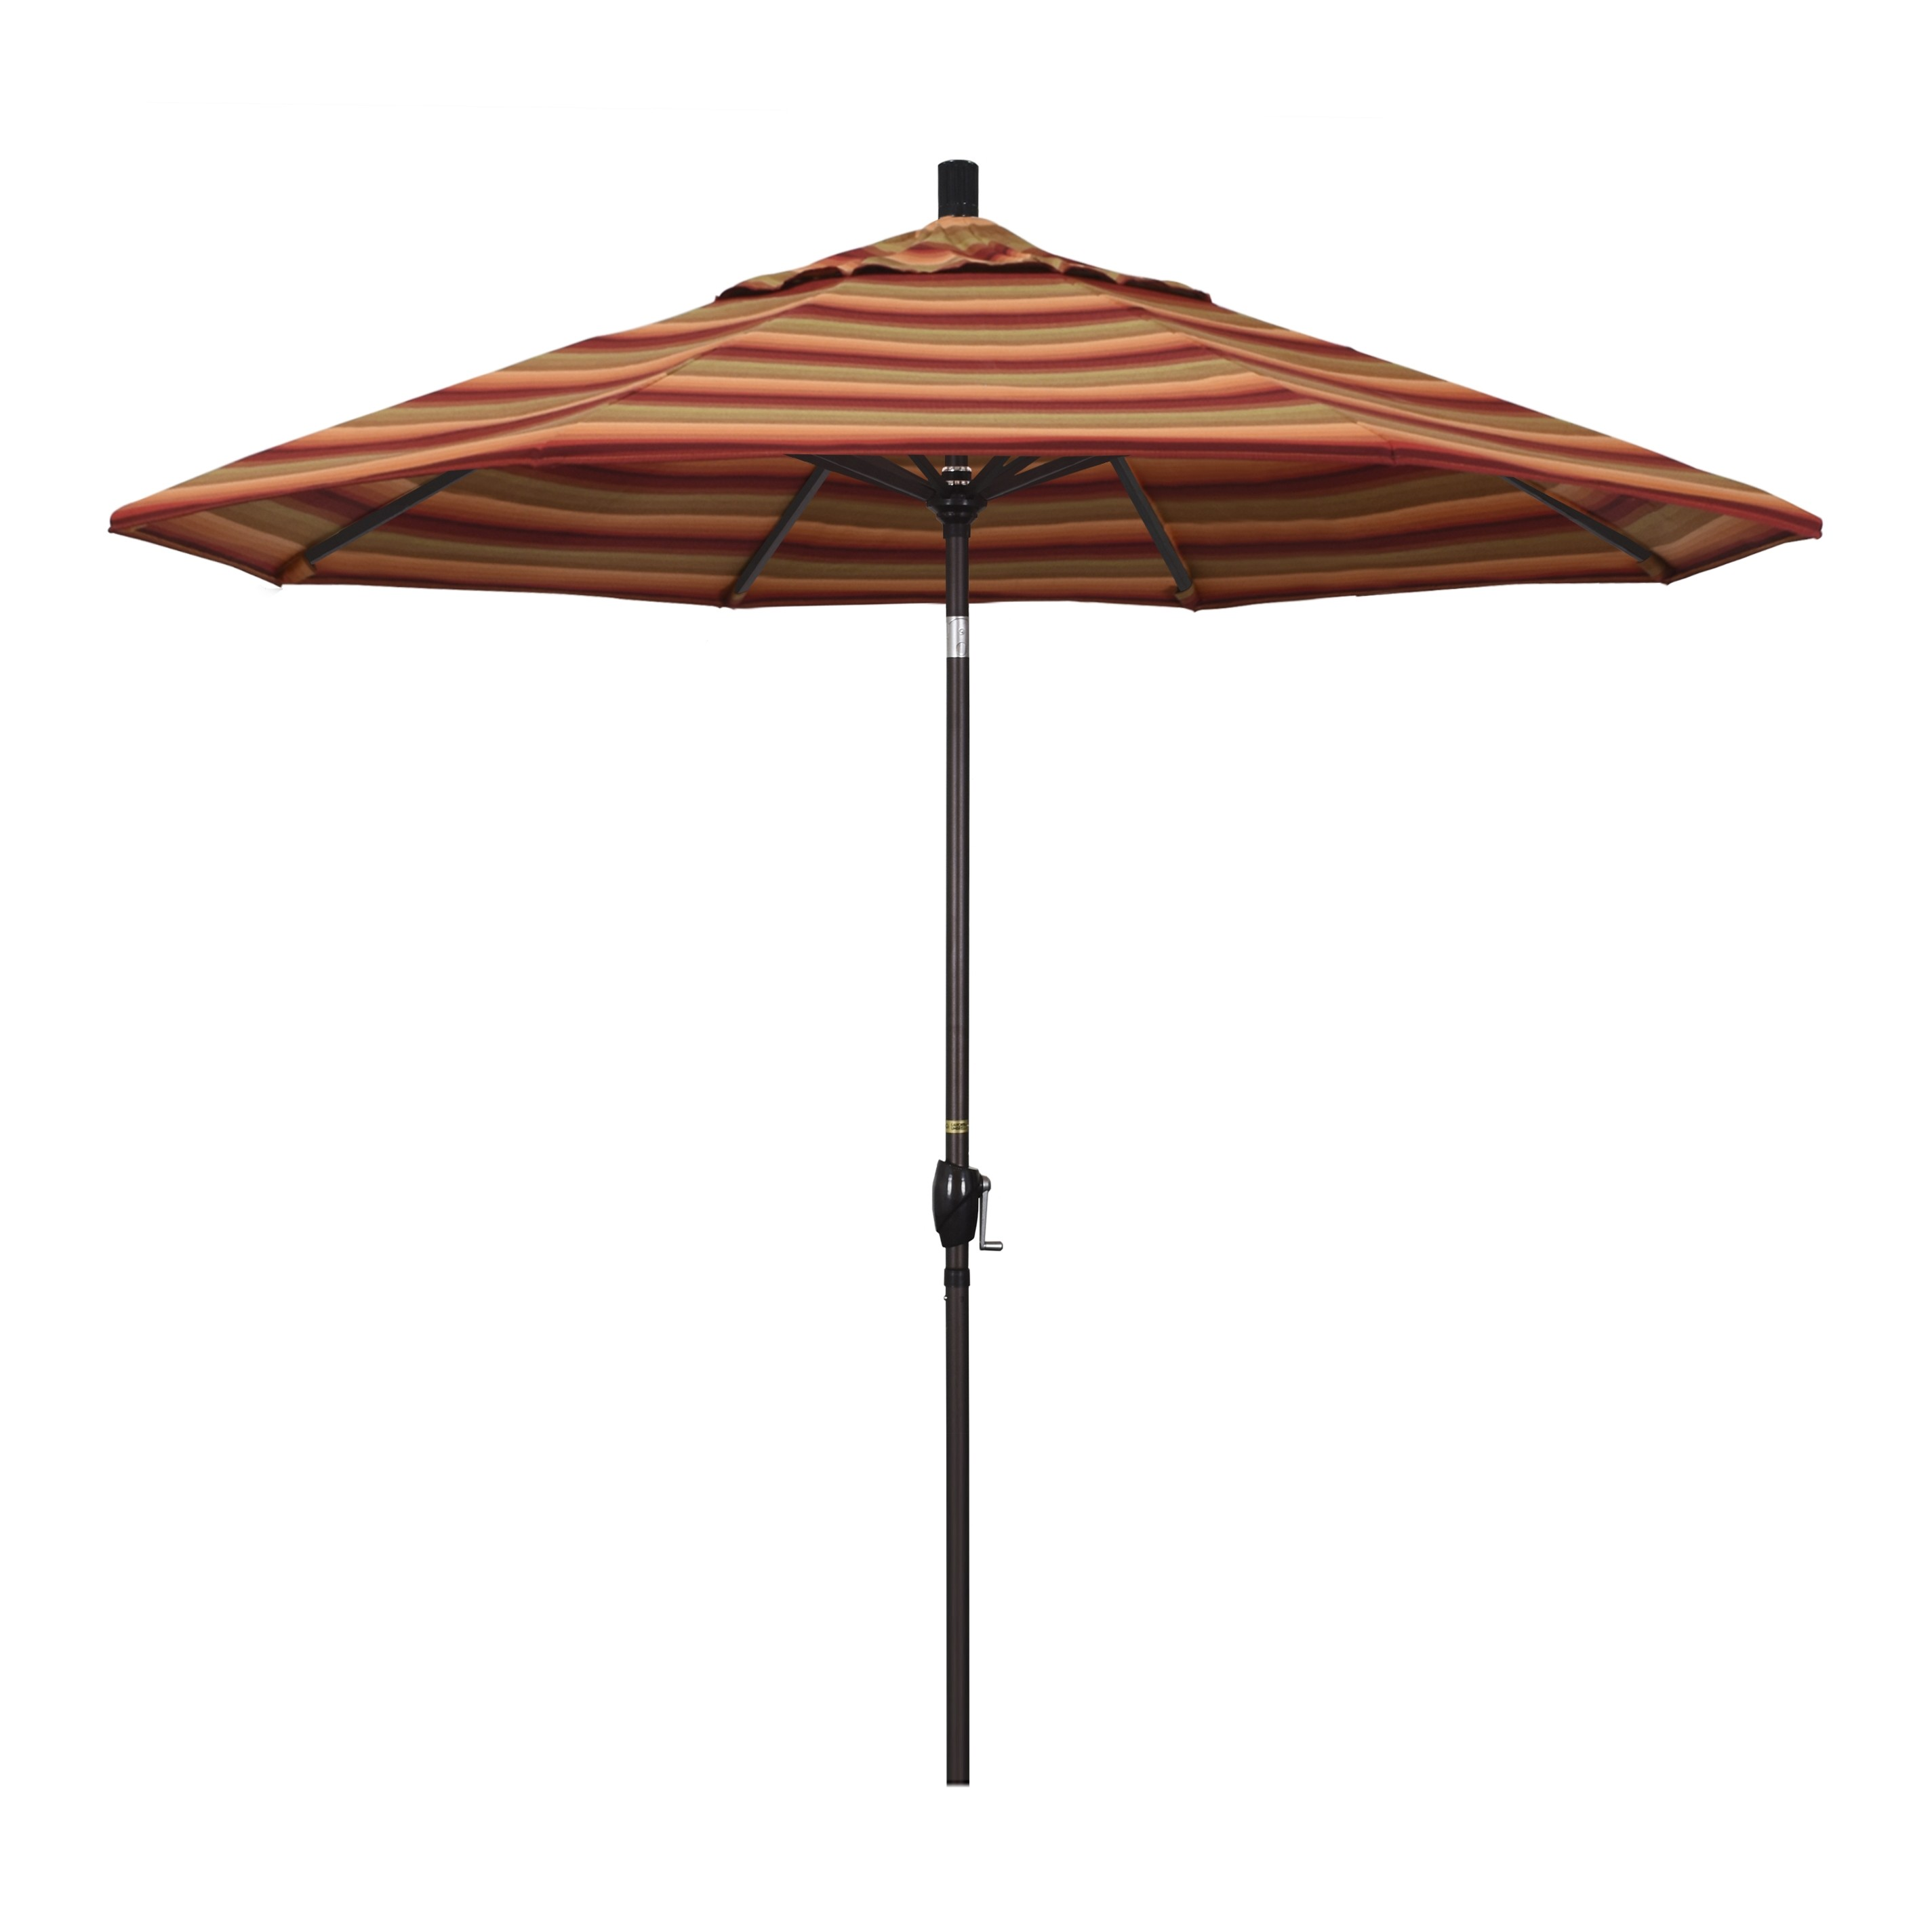 9' Market Style Outdoor Umbrella with Wind Vent Astoria Sunset